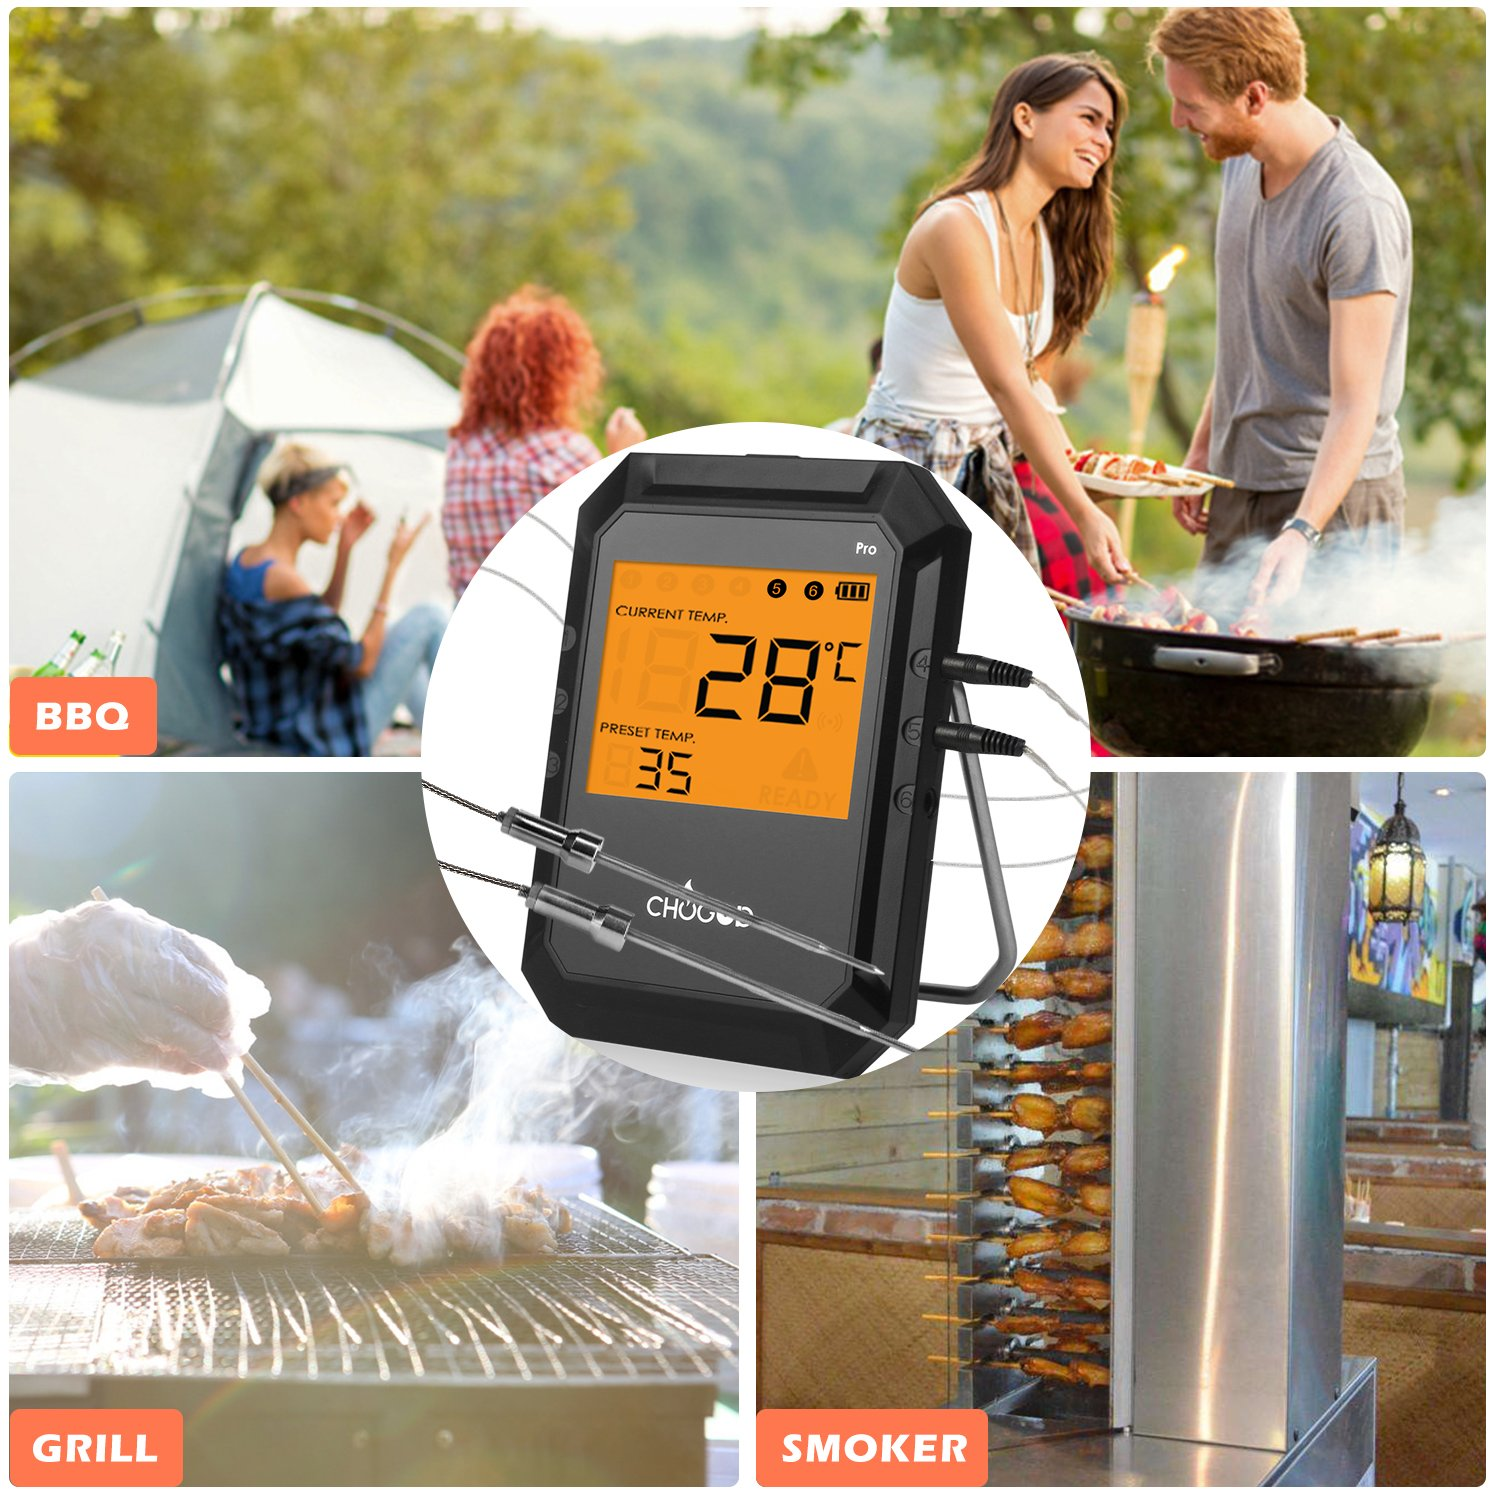 4 Pack Stainless Steel and Waterproof probes for Wireless BBQ//Oven Thermometers Digital Thermometer Probes uvistare Replacement Temperature Probes